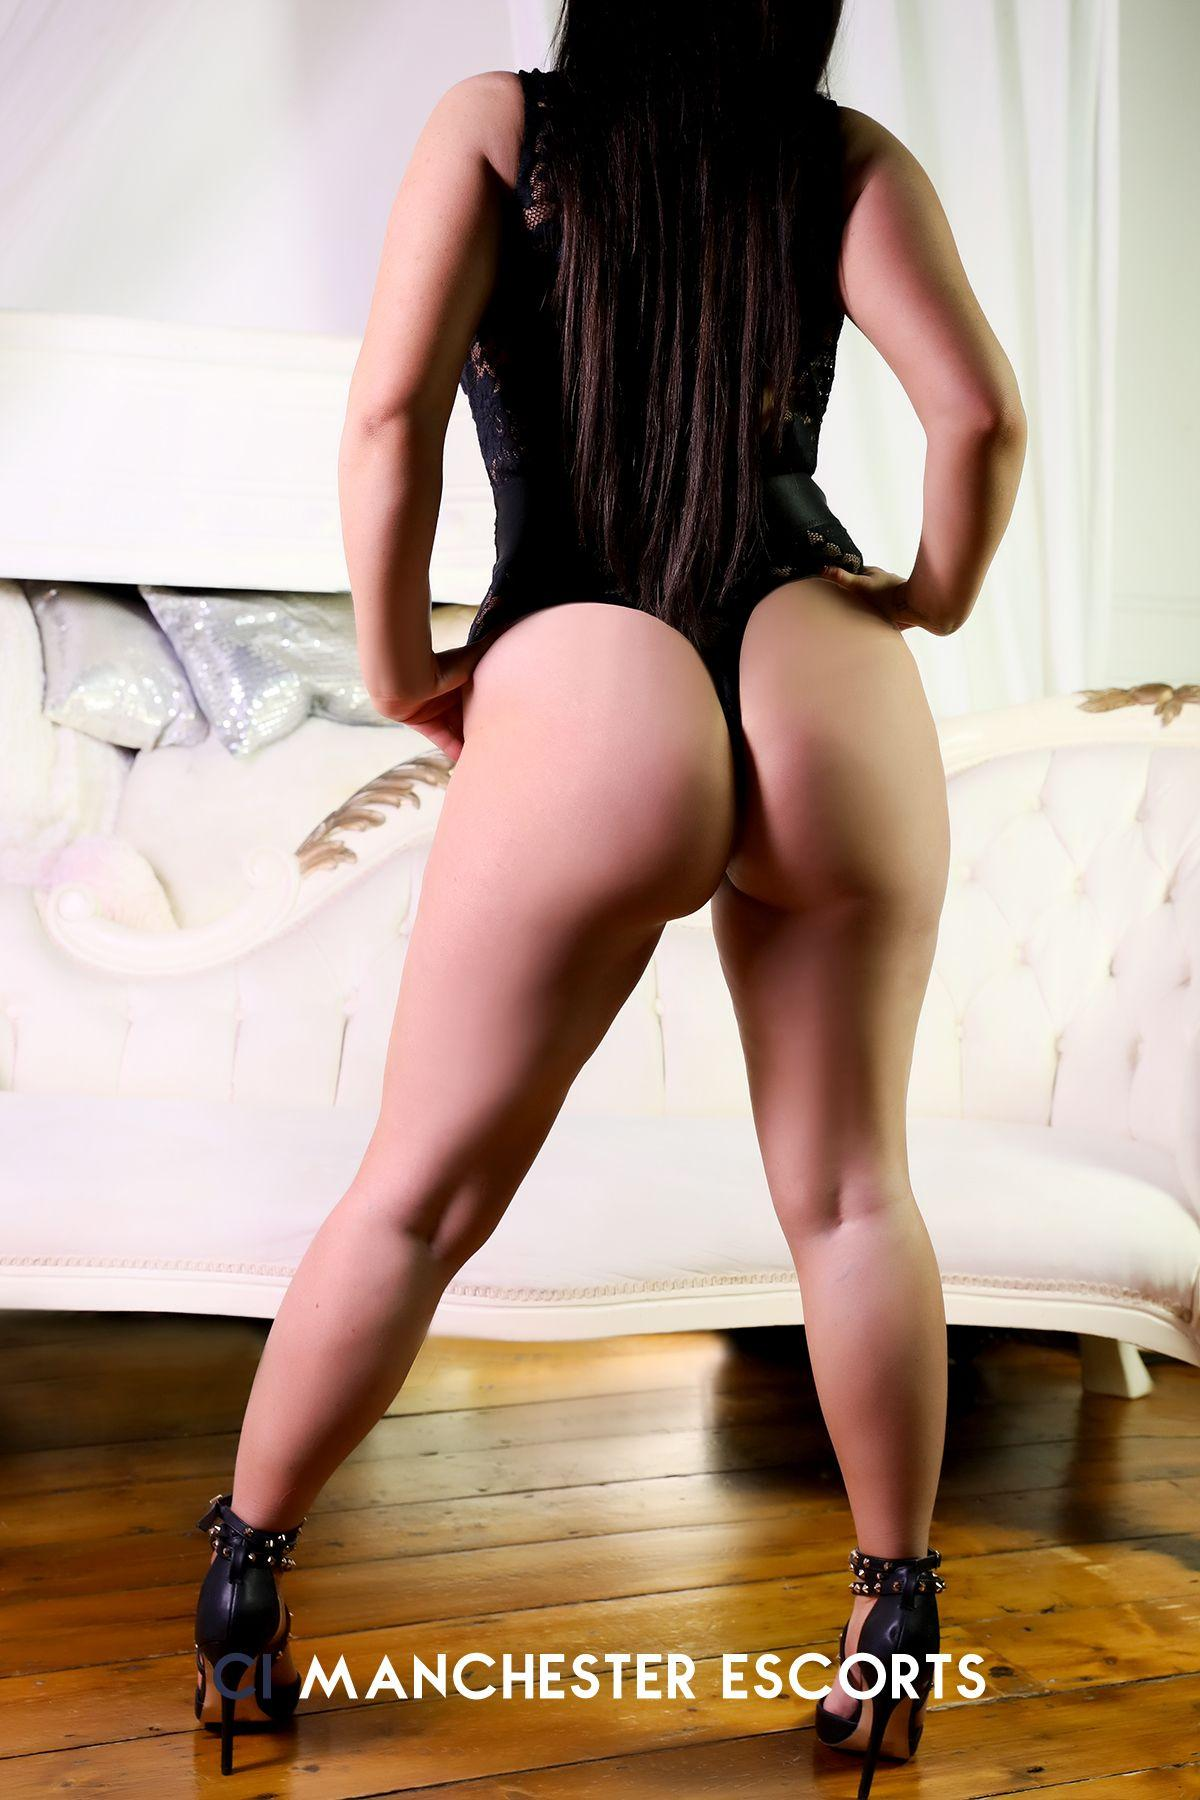 Paige from CI Manchester Escorts